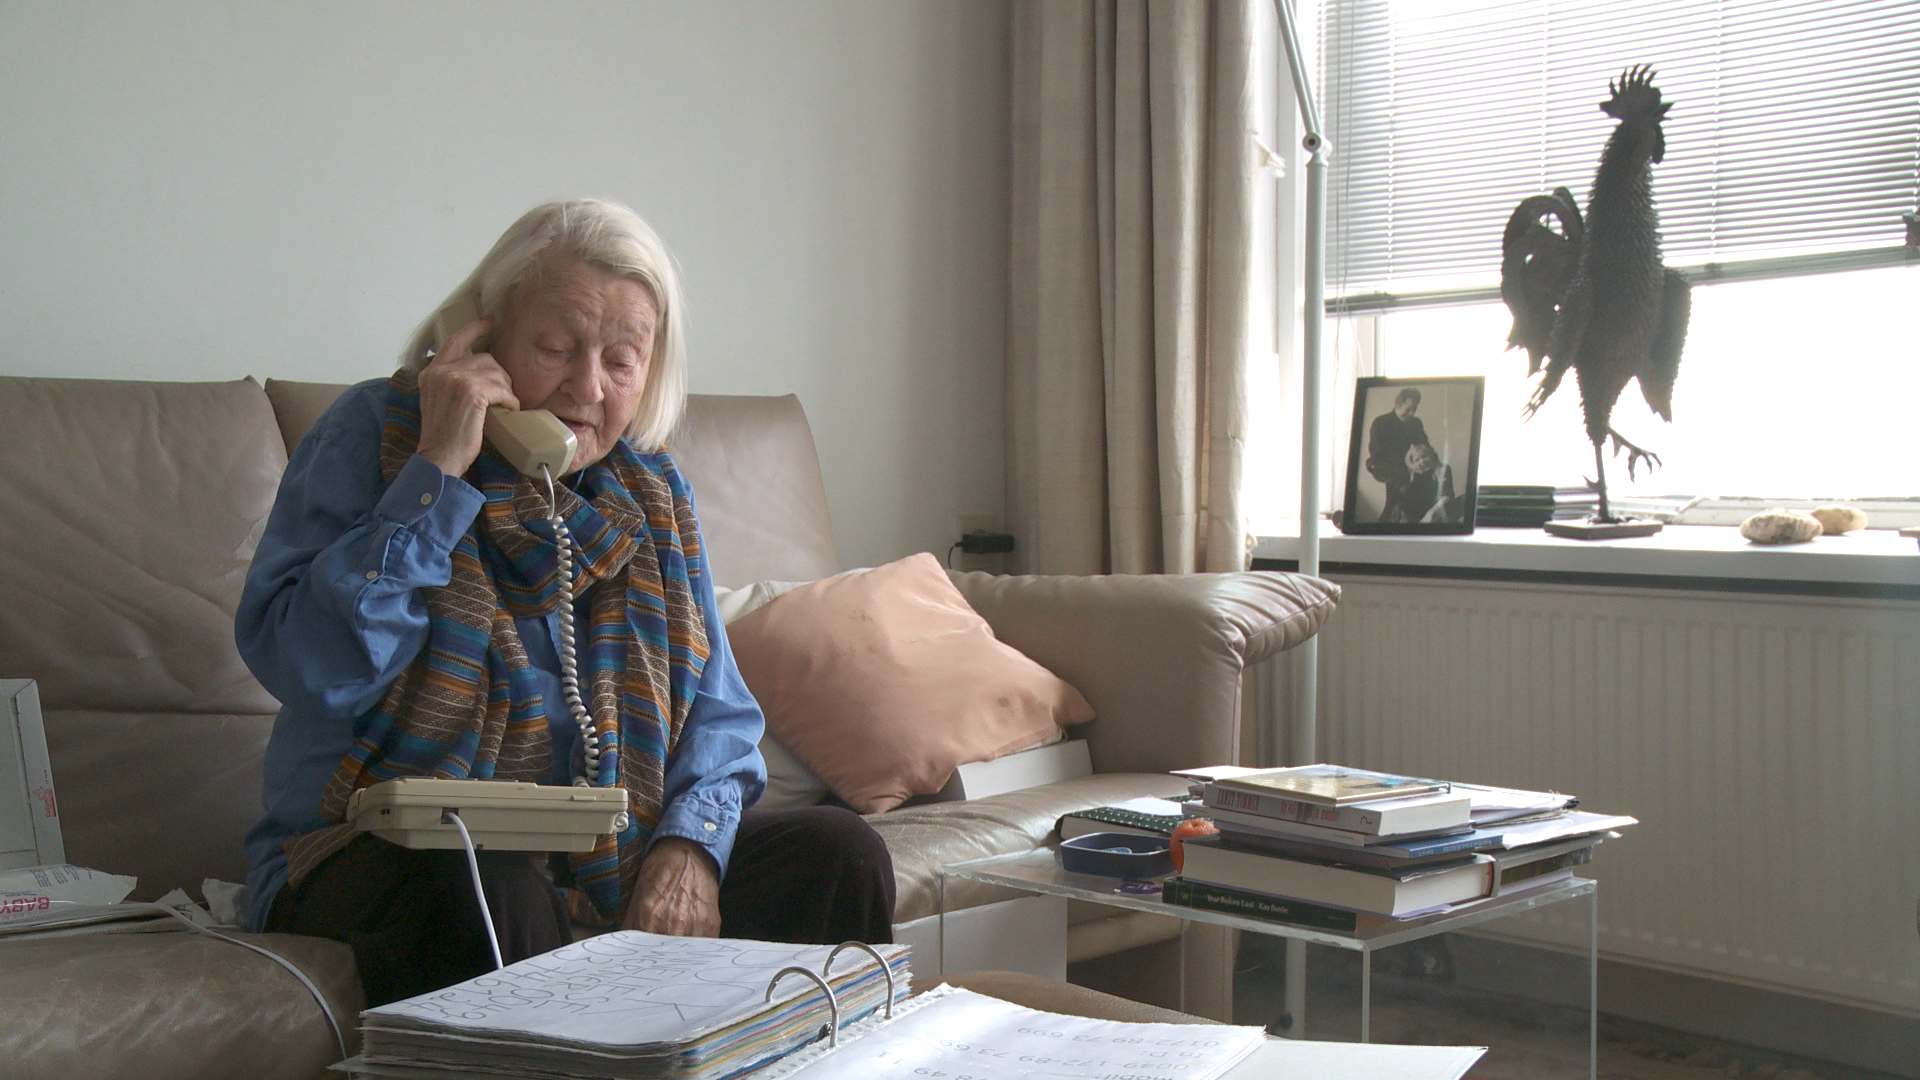 Still from the film Een klein beetje nog. Elisabeth is sitting on her couch on the phone.